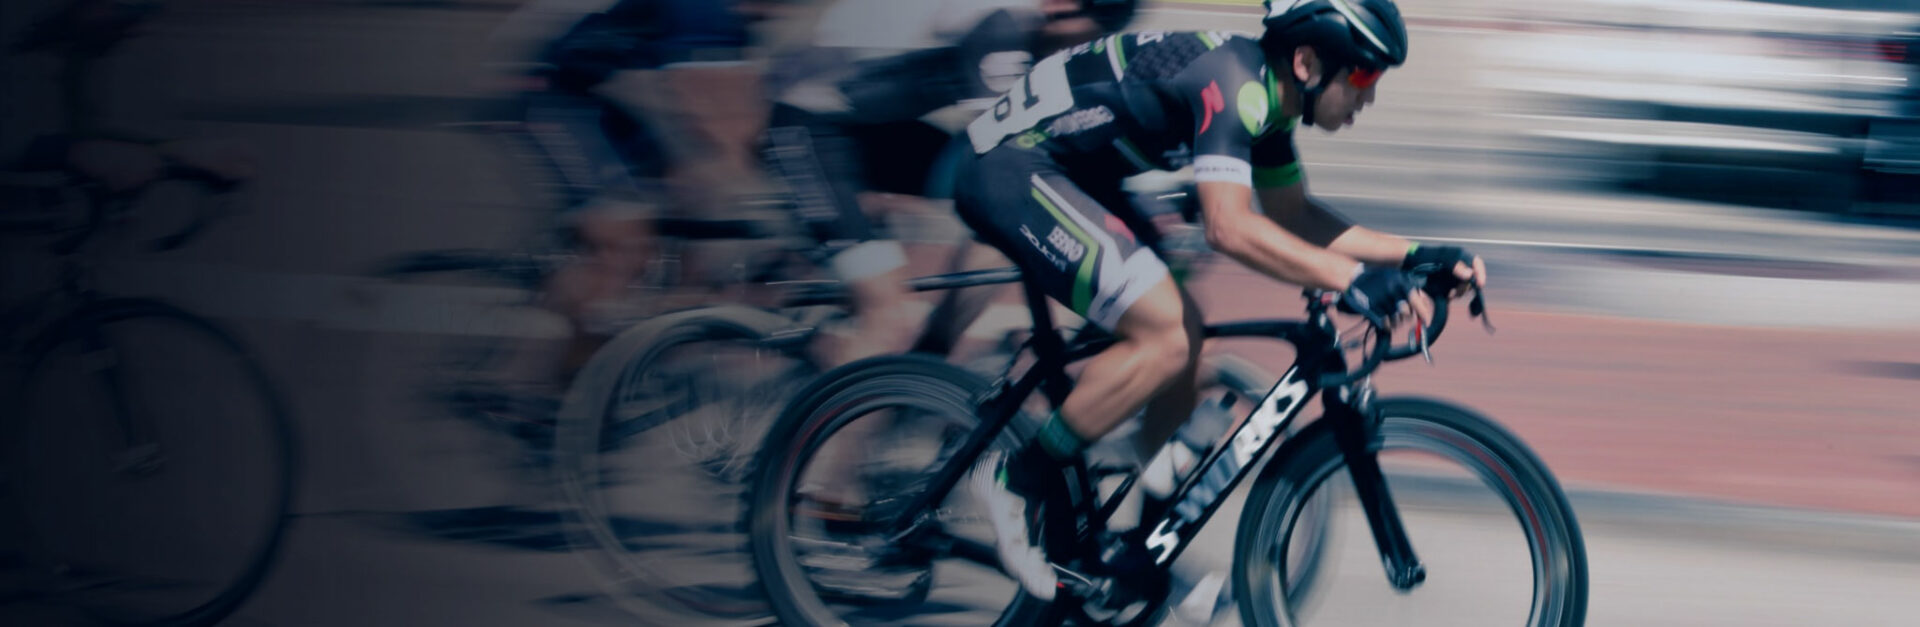 bike race motion blur